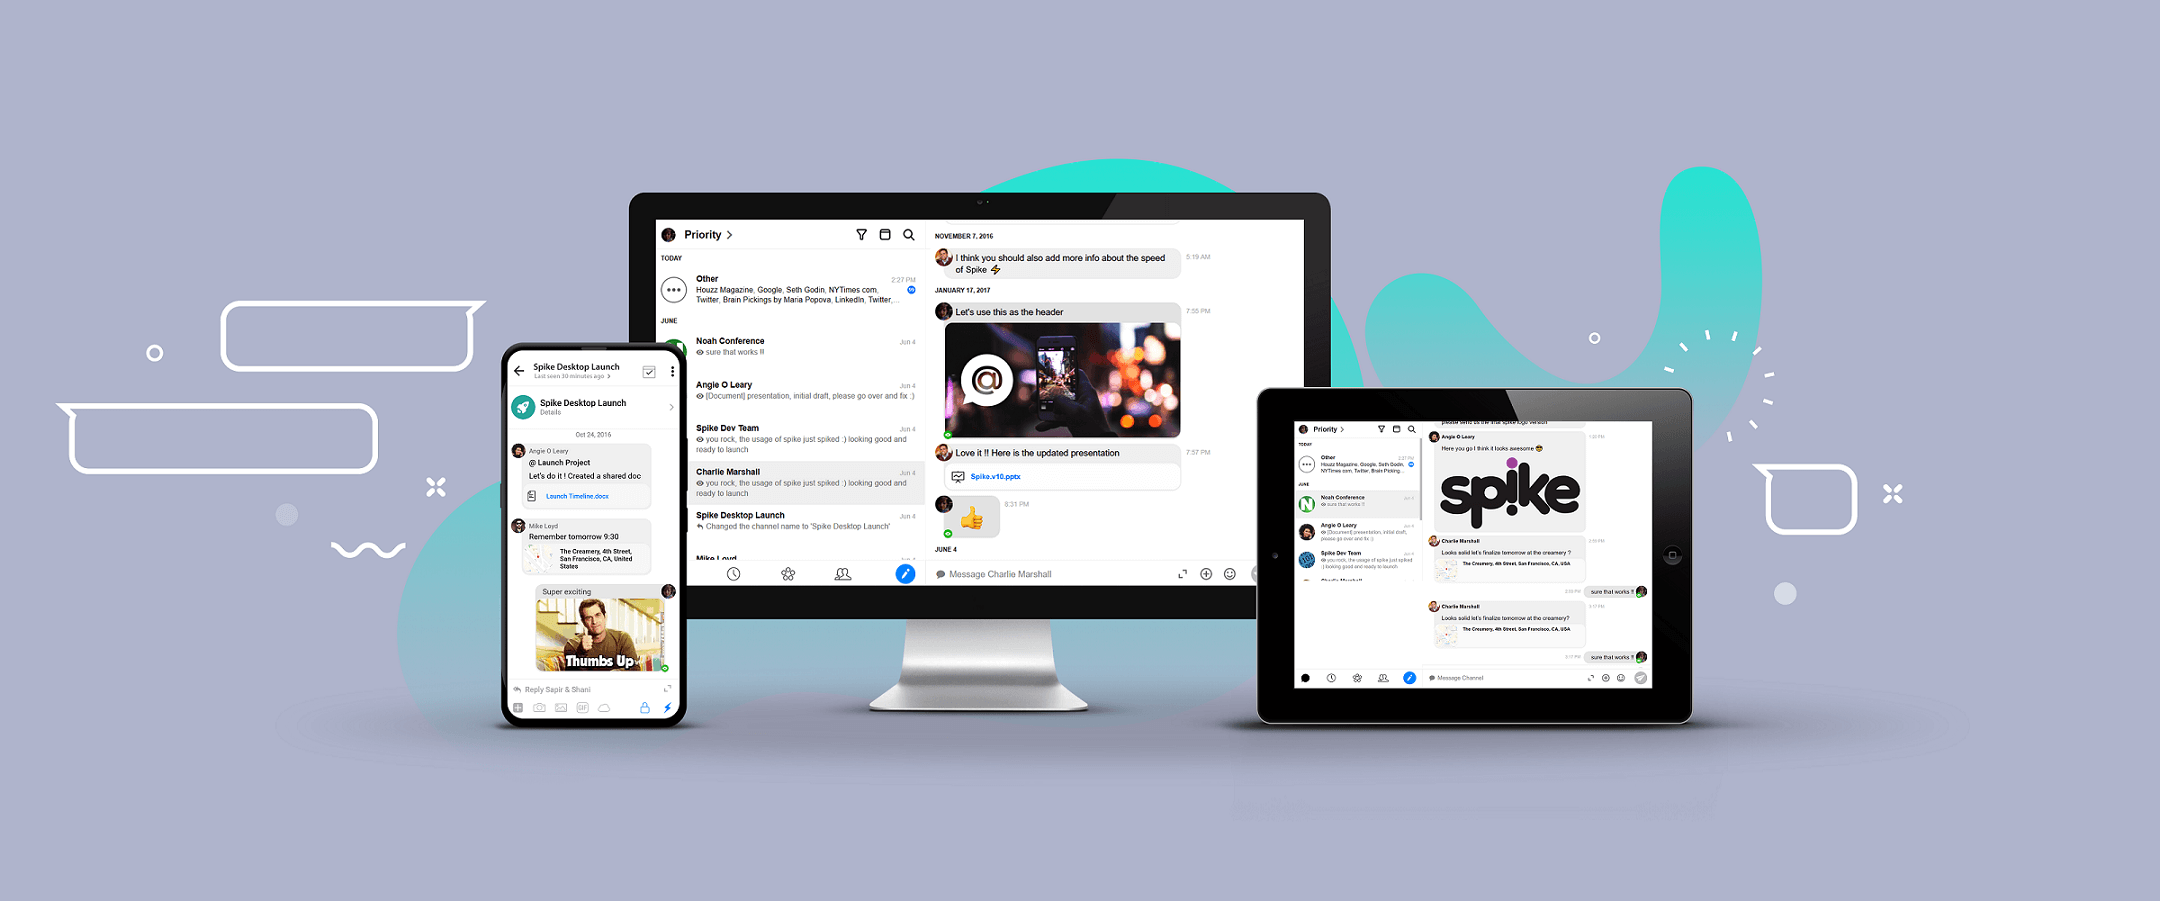 Spike Review, Spike Email, Hop Email Review, Productivity Land